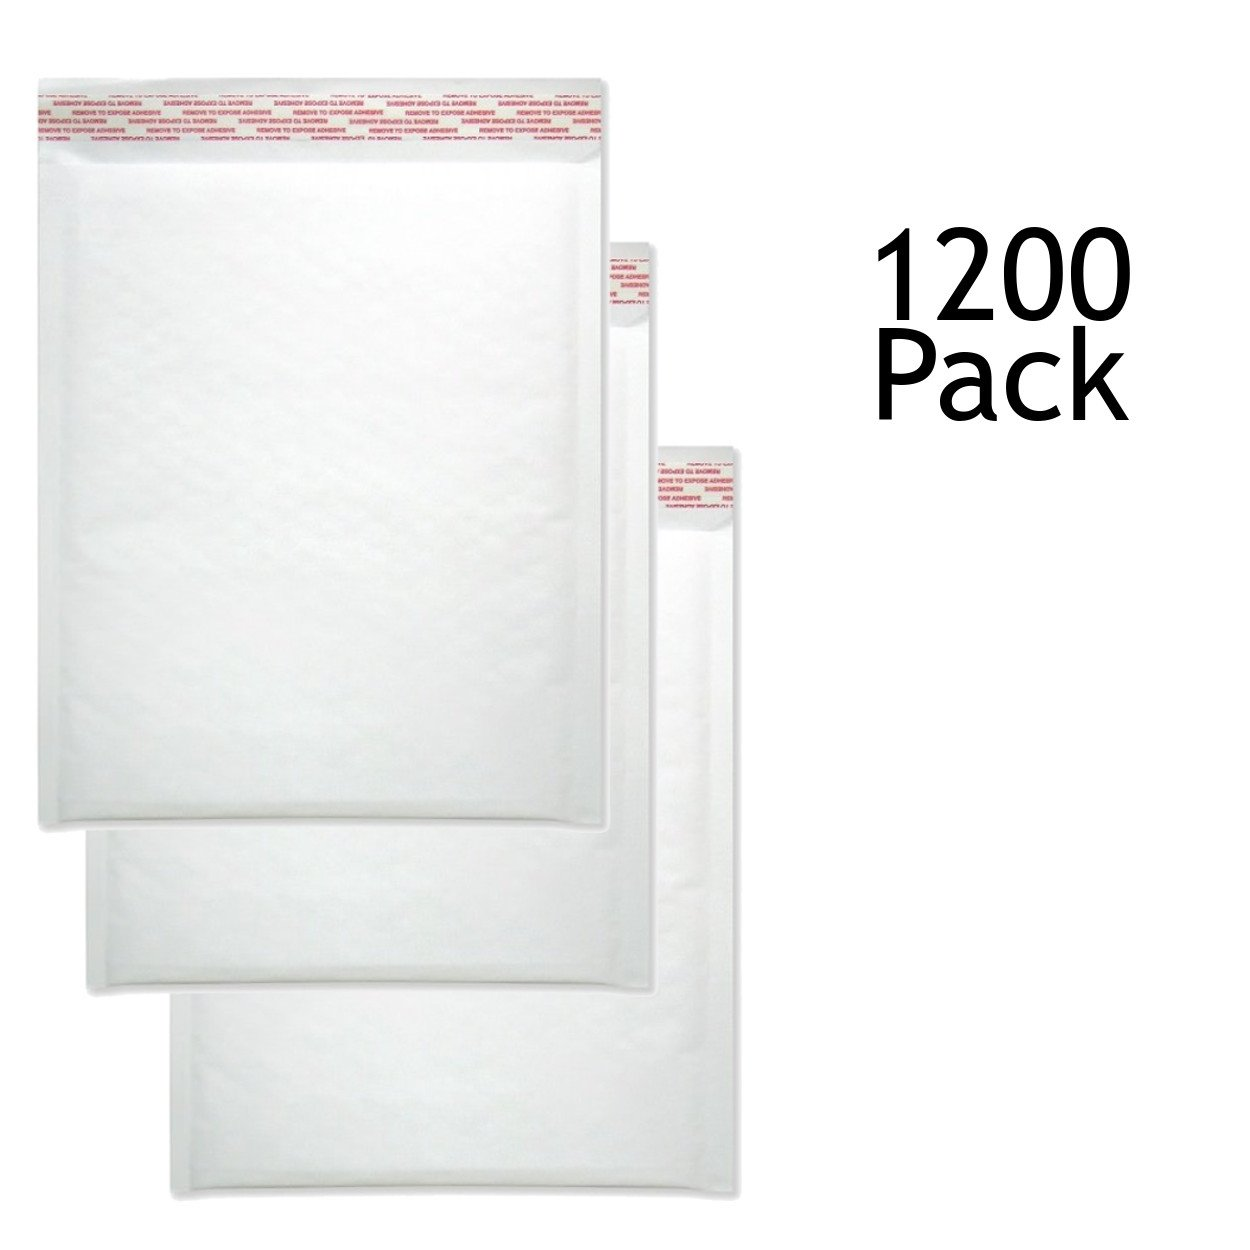 SVI Sales 10.5'' x 16'' Padded Self Seal Bubble Lined White Mailers Ship with UPS, USPS, FedEx and More, Pack White Colored White Bubble Mailers